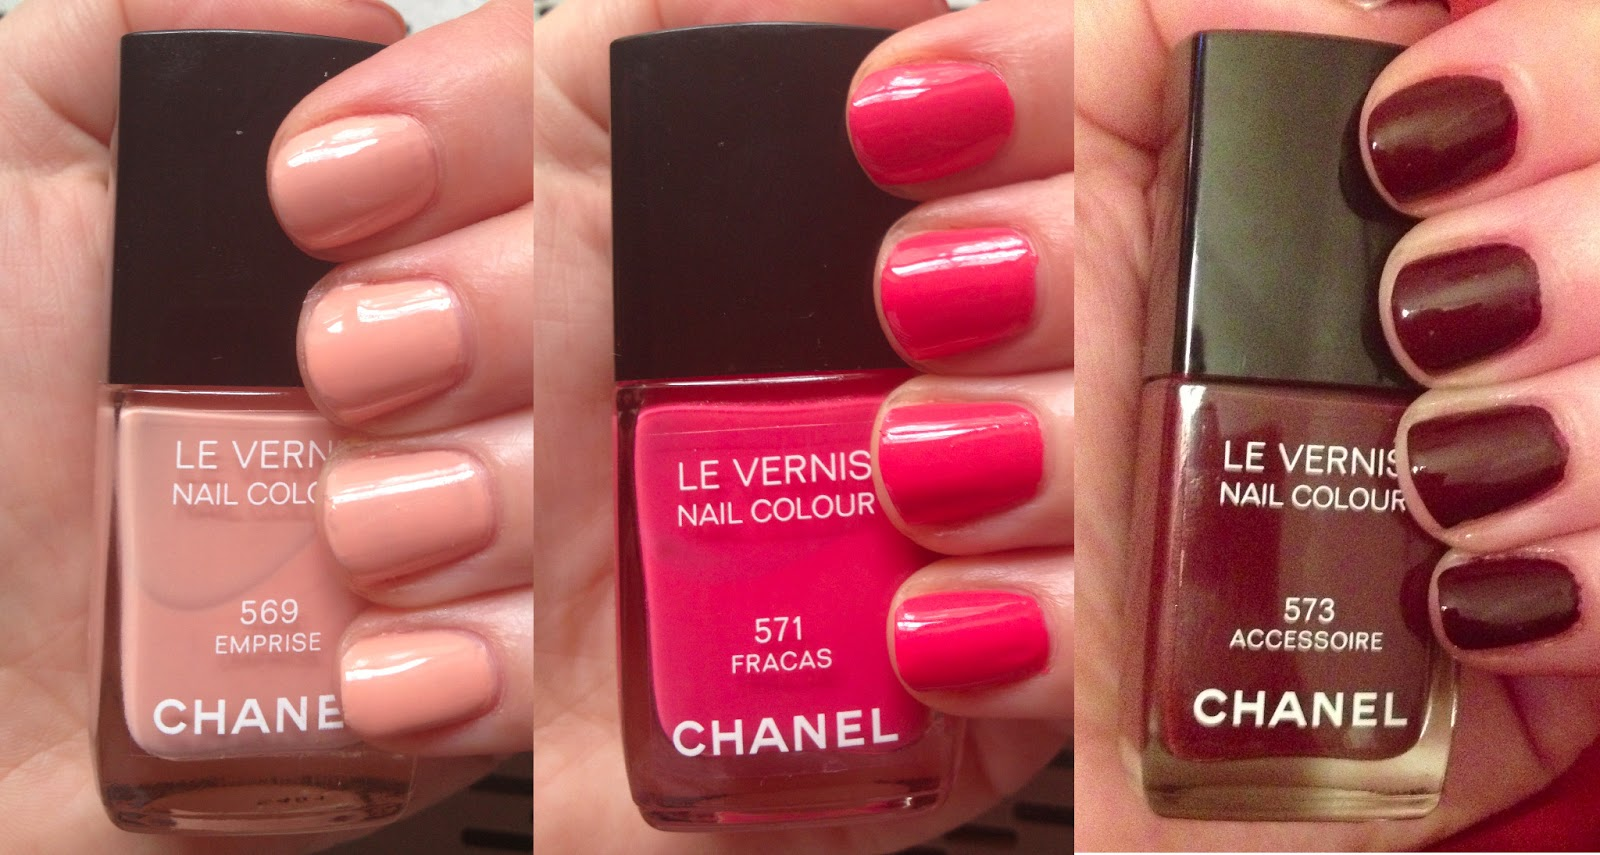 The Beauty of Life: Chanel 2013 Spring Couture Nail Polish Swatches